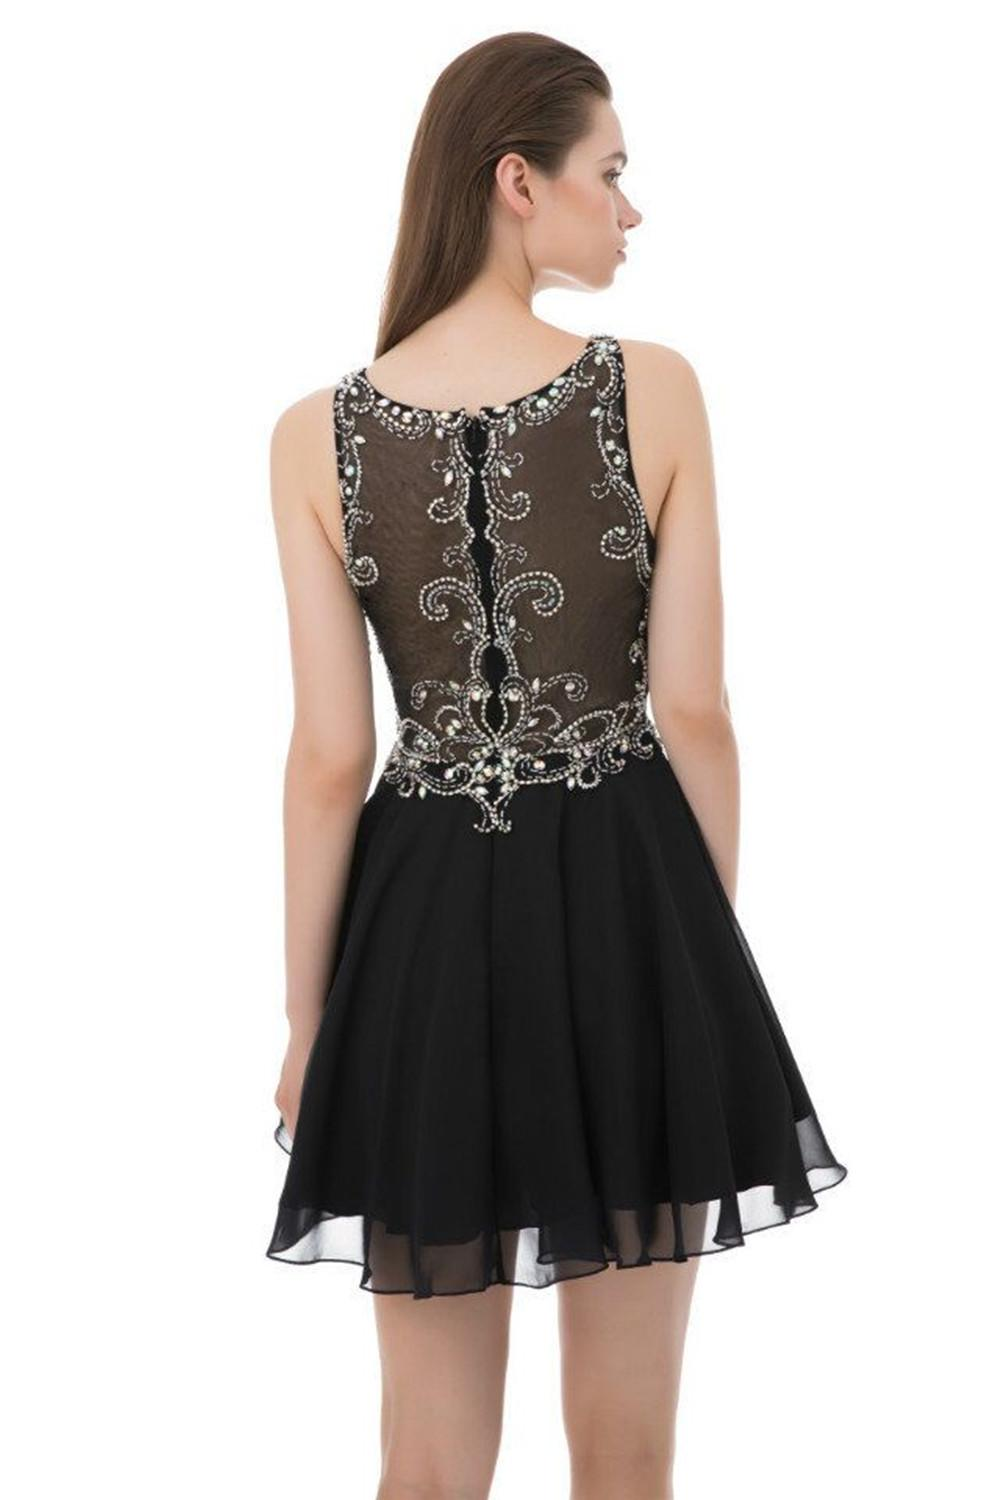 Little Black Cocktail Party Dress Rhinestone Beaded Short Prom Dresses 2020 See Through Back Homecoming Dresses Chiffon Sweet 16 Dress